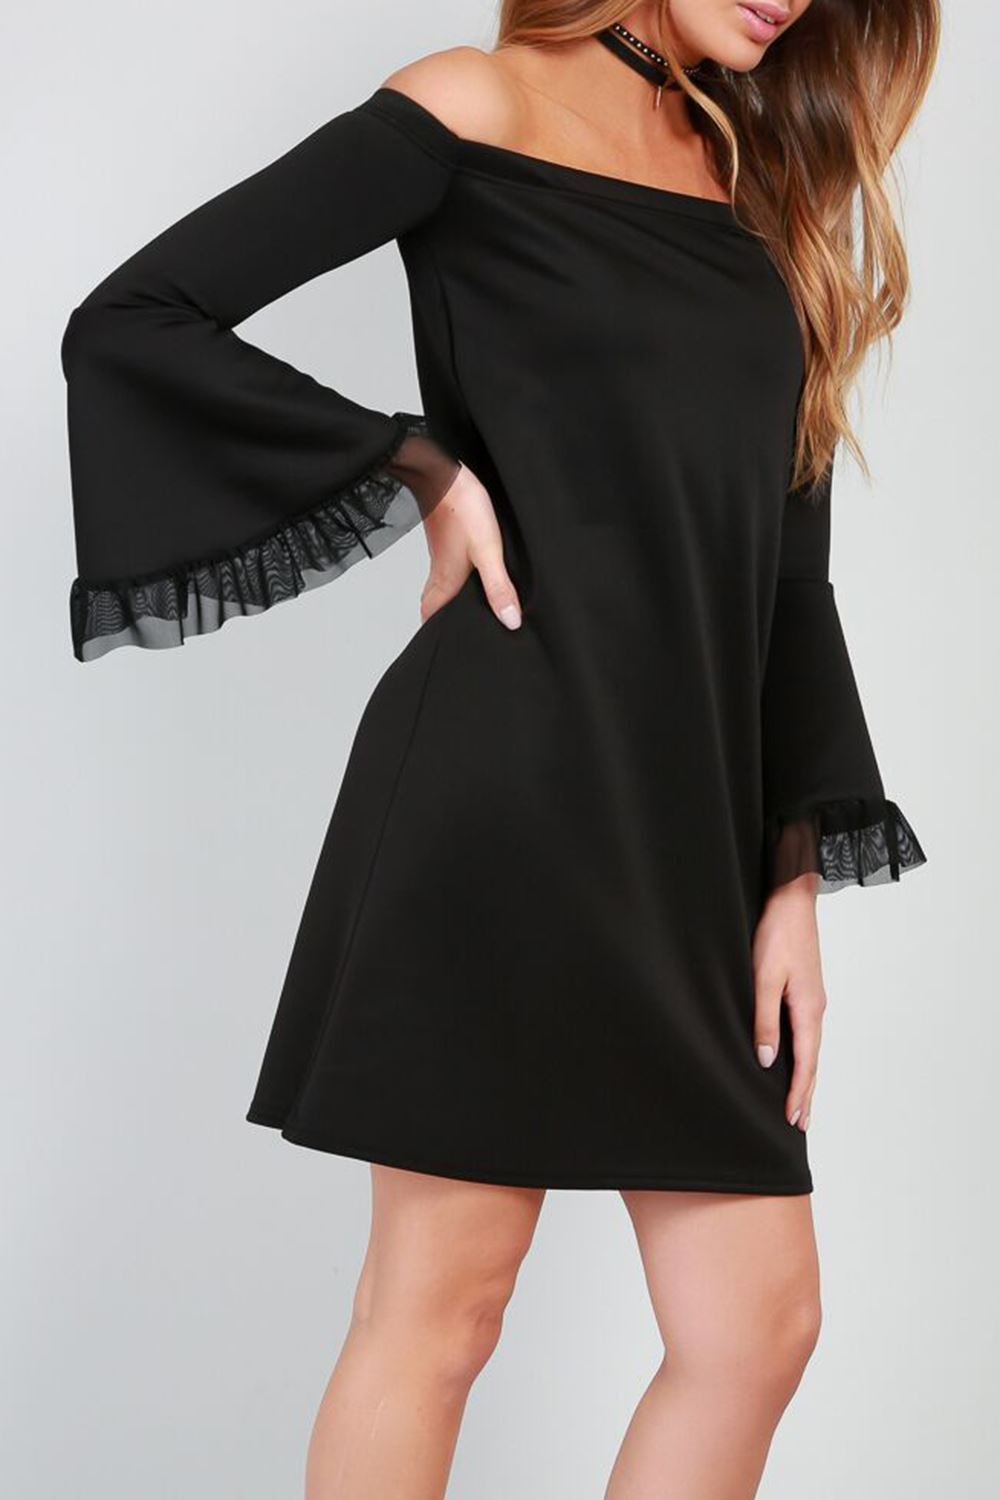 New-Womens-Bardot-Off-The-Shoulder-Ladies-Bell-Frill-Swing-Flared-Mini-Dresses thumbnail 4